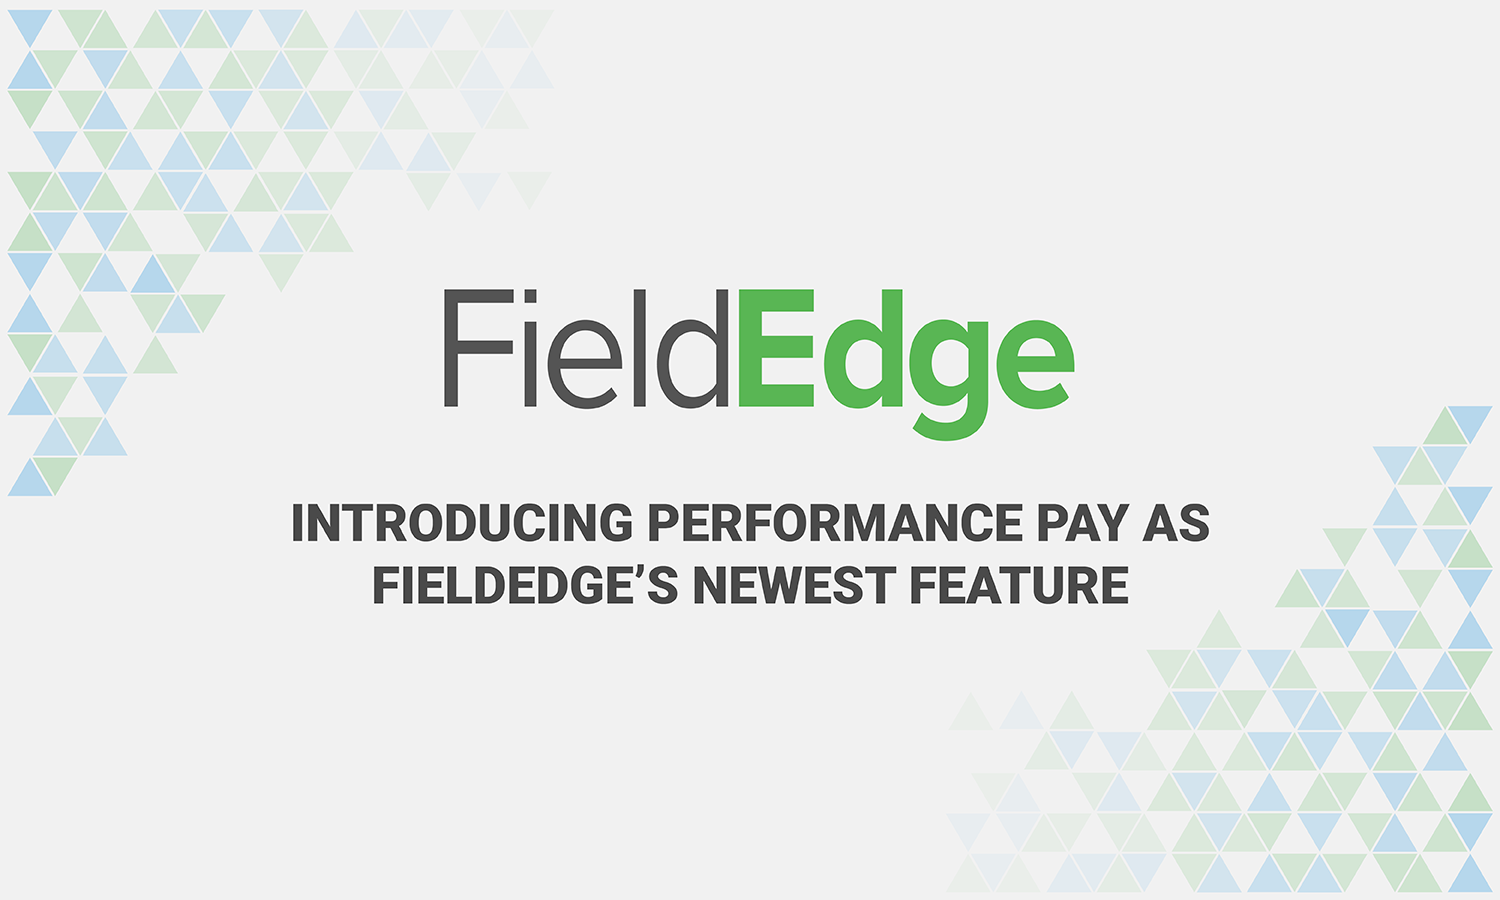 fieldedge performance pay